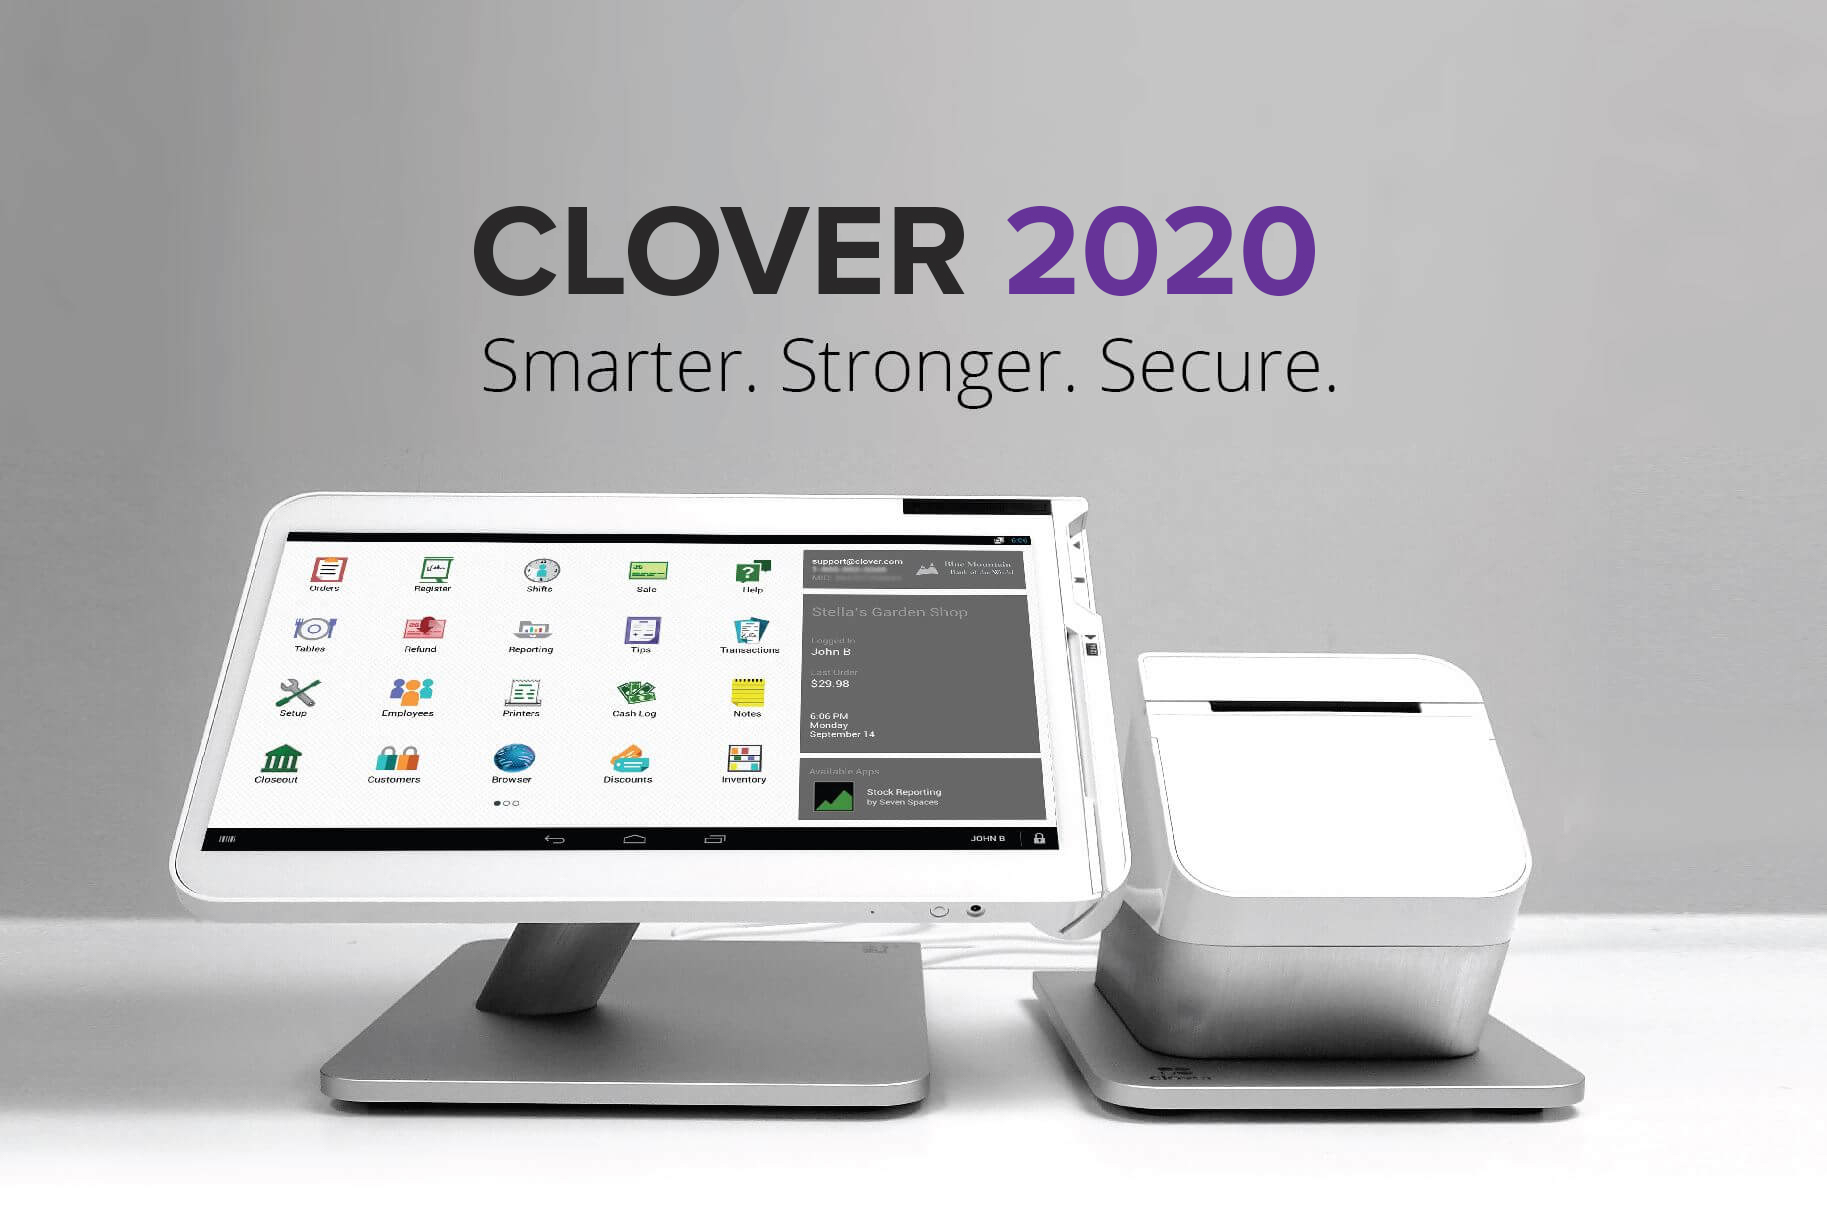 Why you should be selling clover in 2020